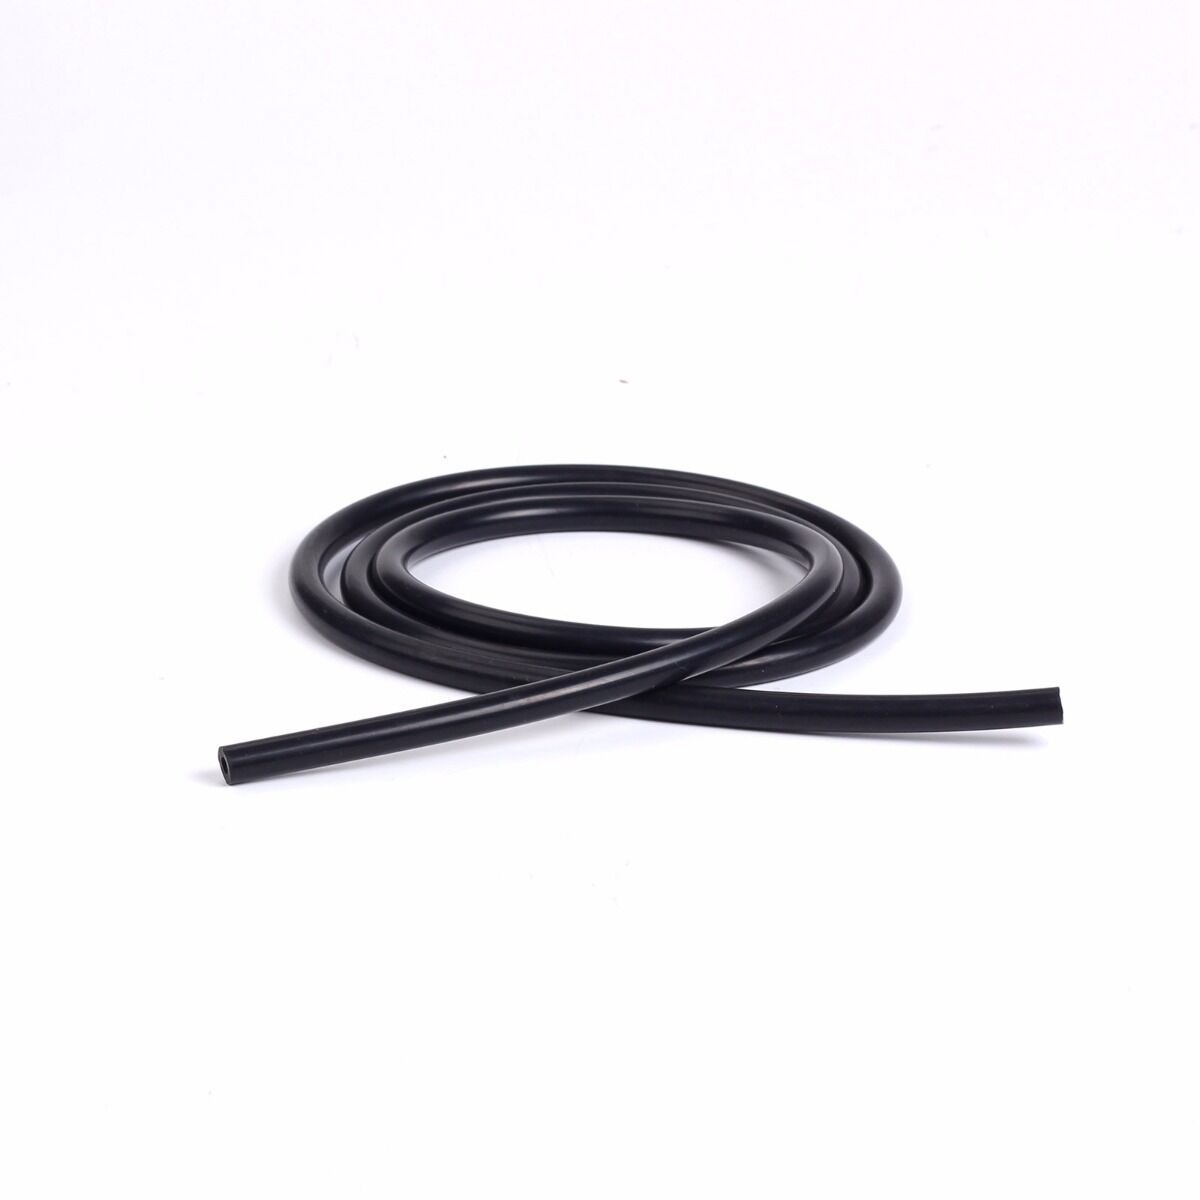 Inner Diameter Silicone Vacuum Hose by Foot 3mm Black 0.12 inches